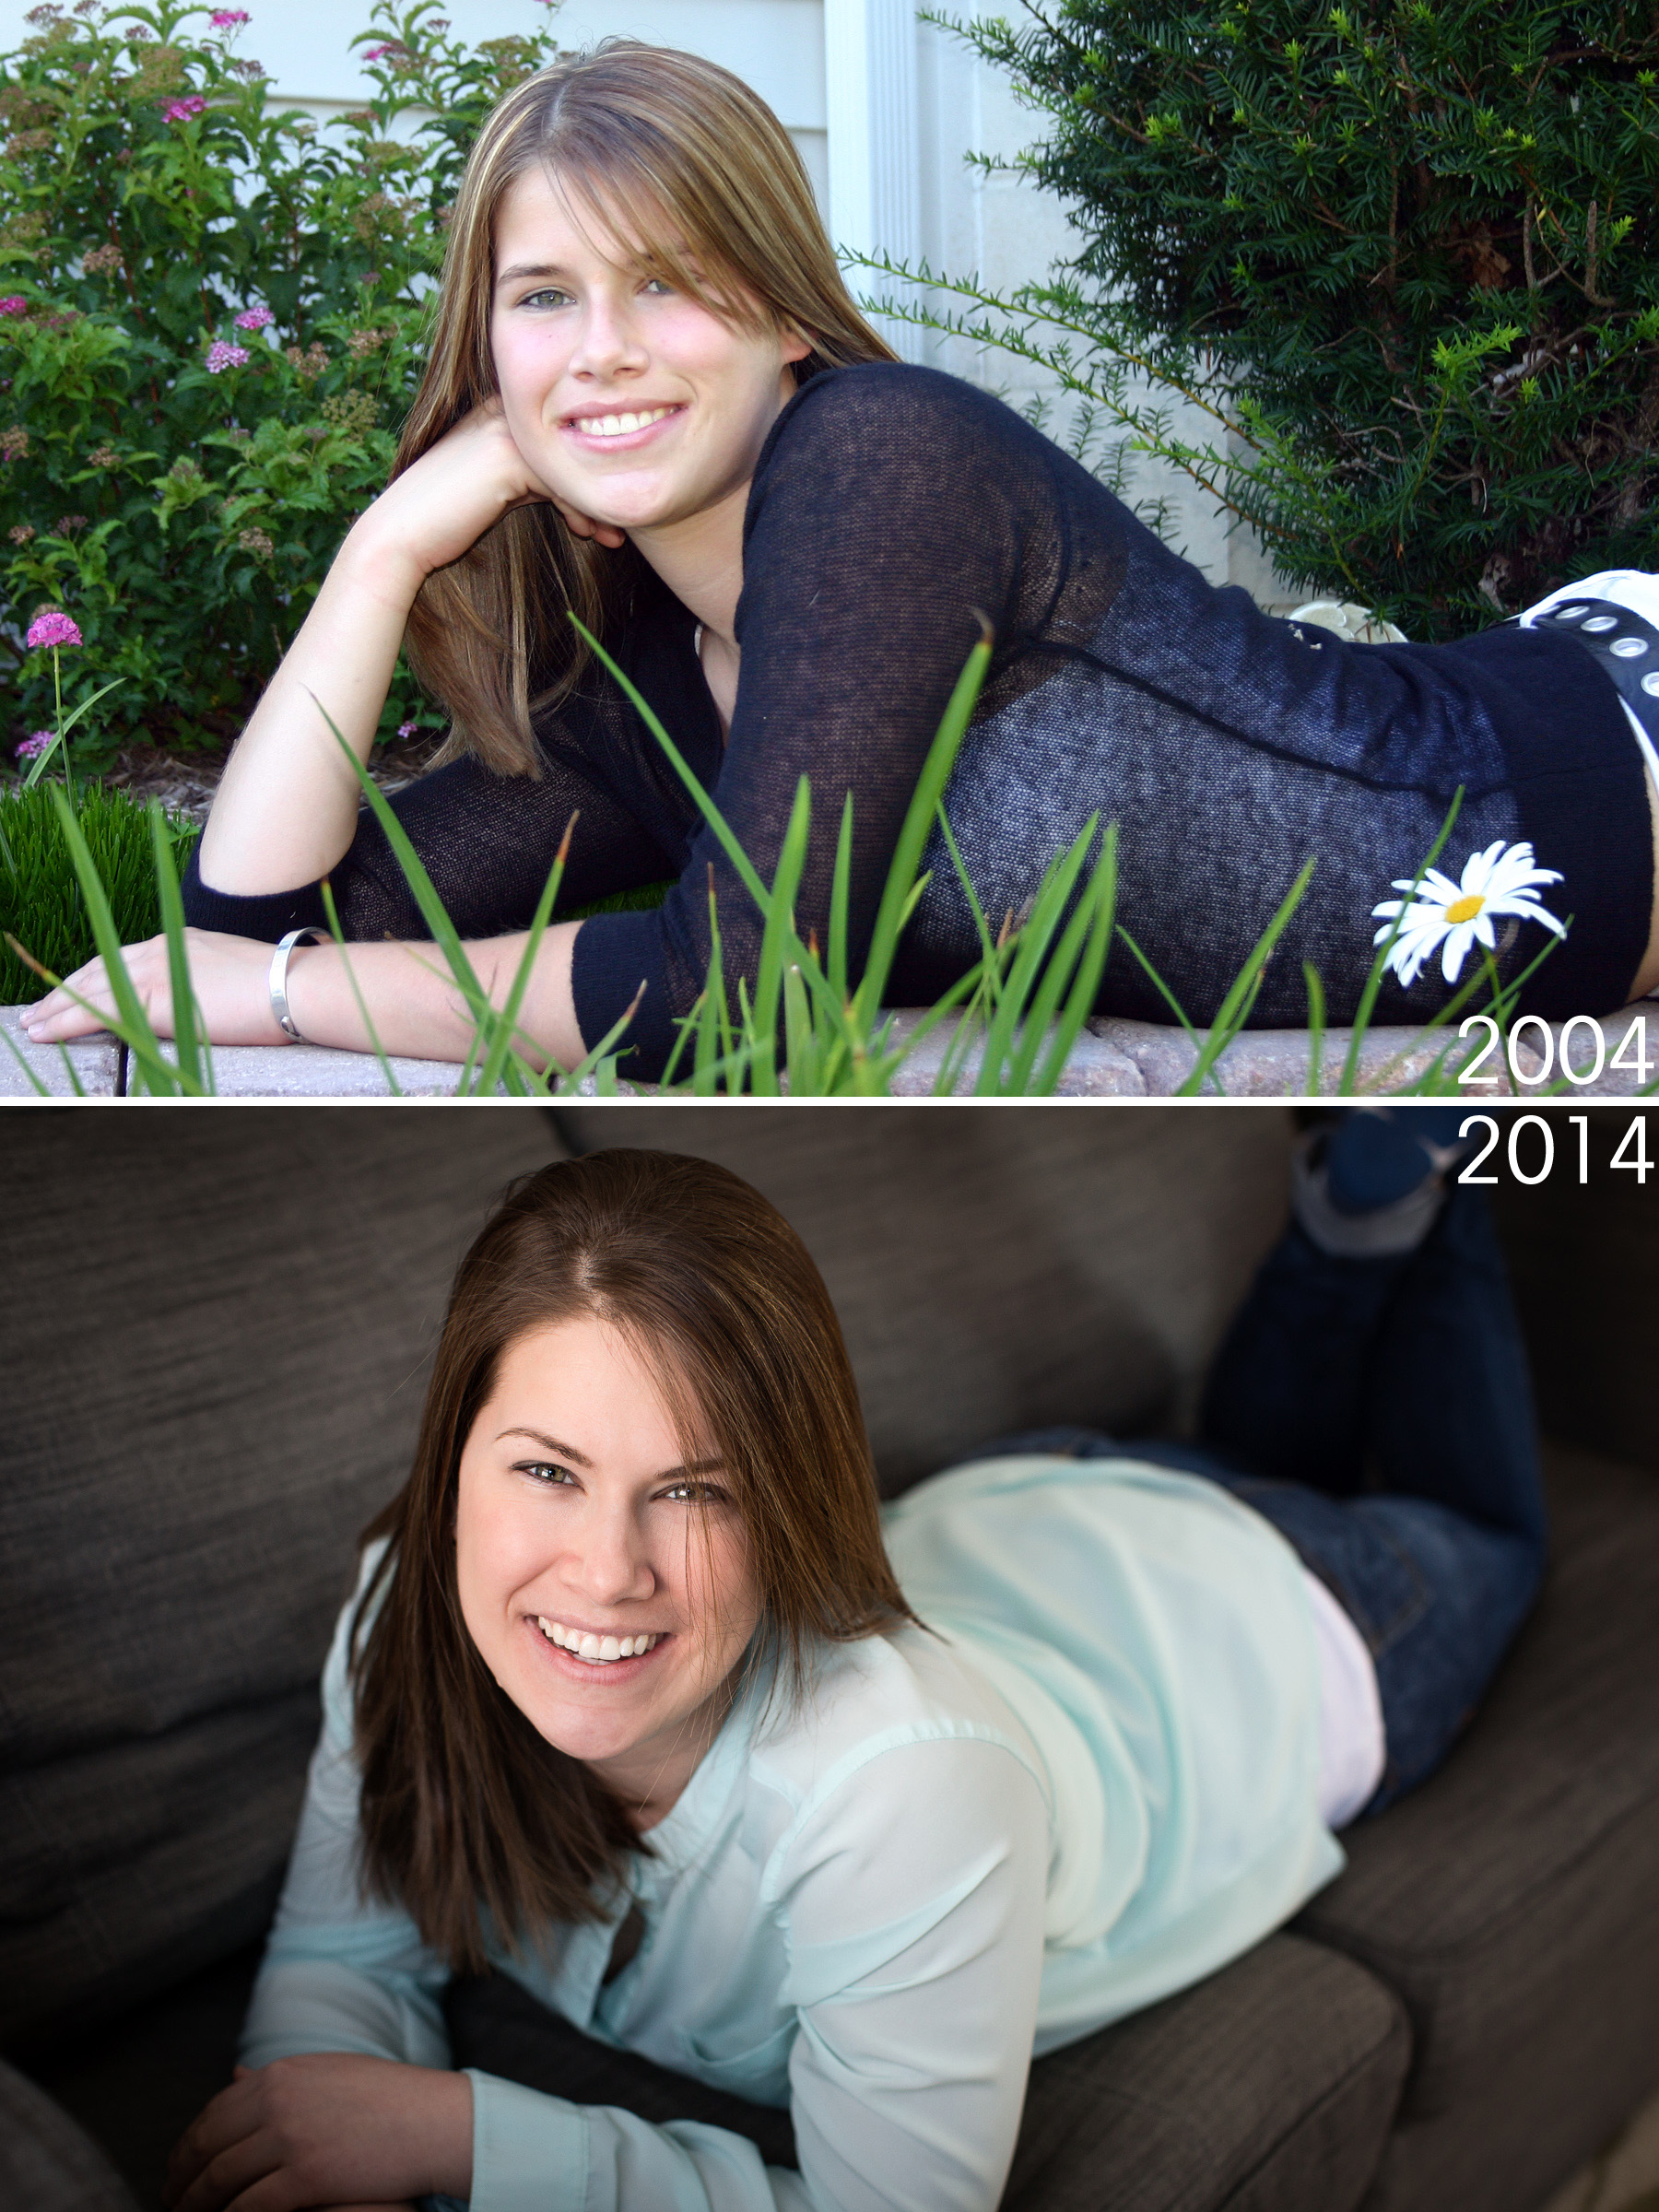 Then and now, accidentally a very similar pose!